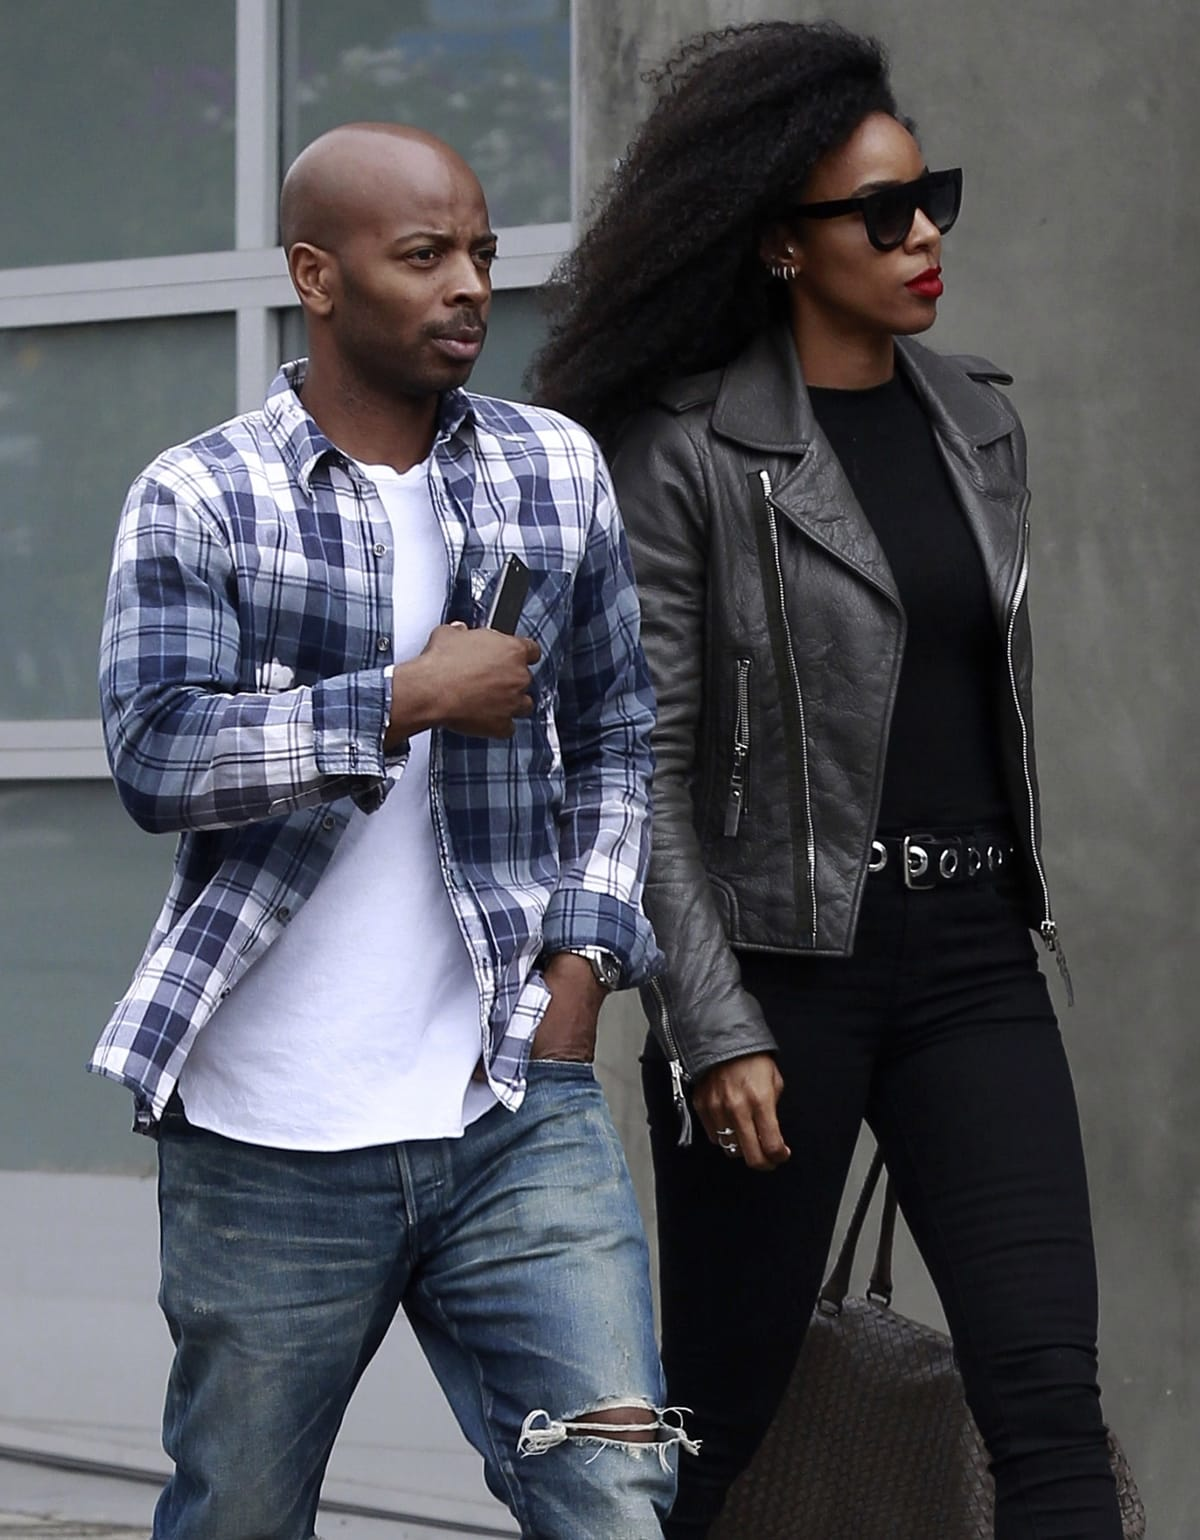 Kelly Rowland and Tim Weatherspoon began dating in 2011 and married on May 9, 2014, in Costa Rica